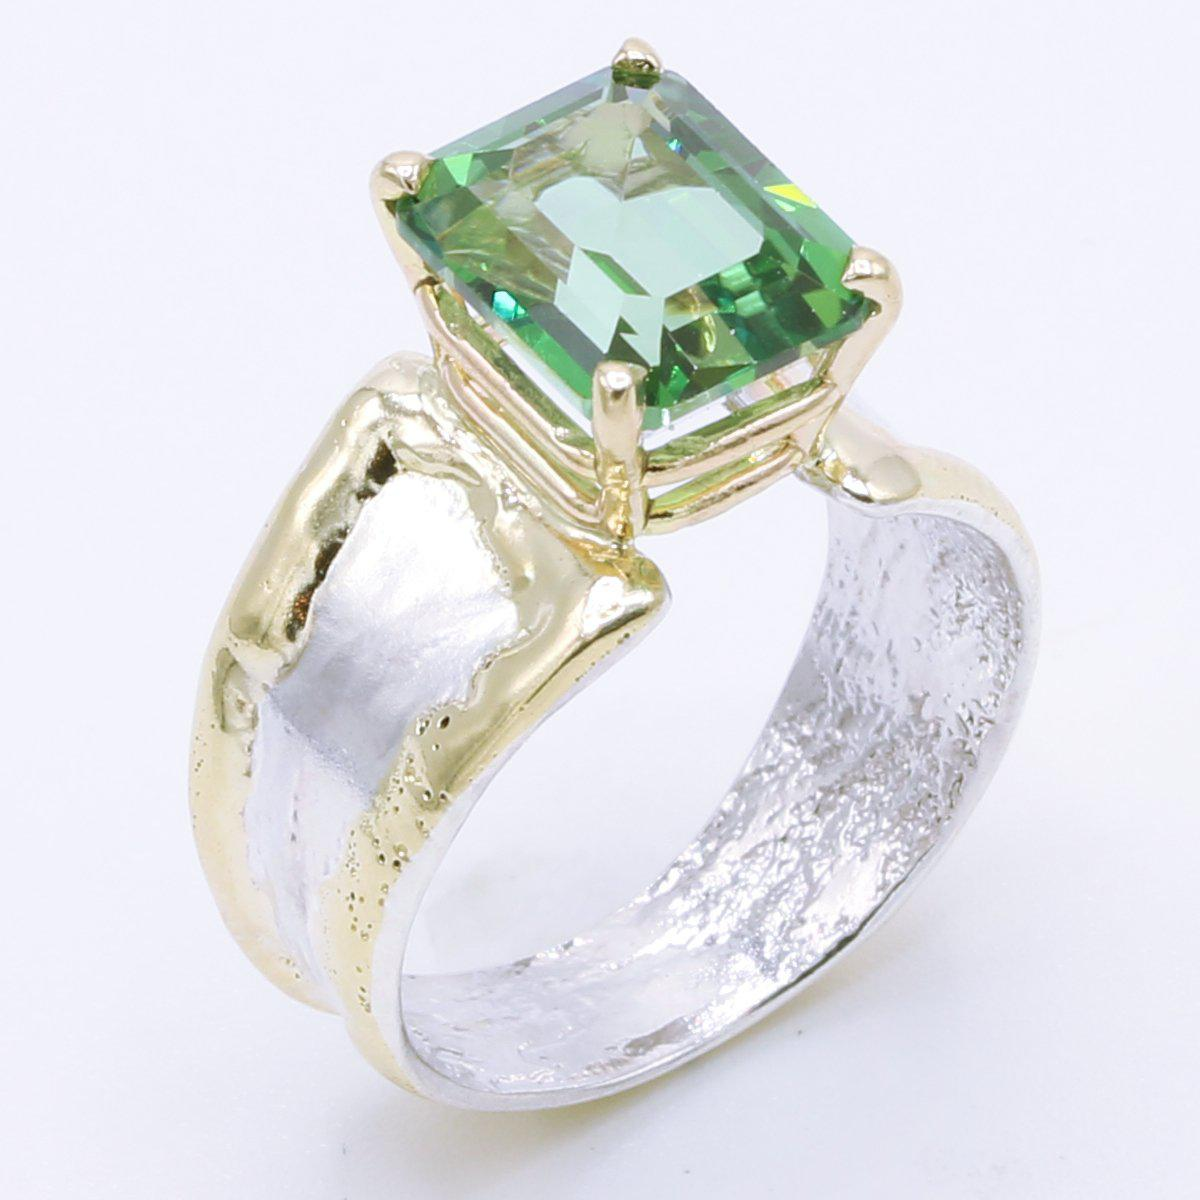 14K Gold & Crystalline Silver Rainforest Green Topaz Ring - 34995-Fusion Designs-Renee Taylor Gallery